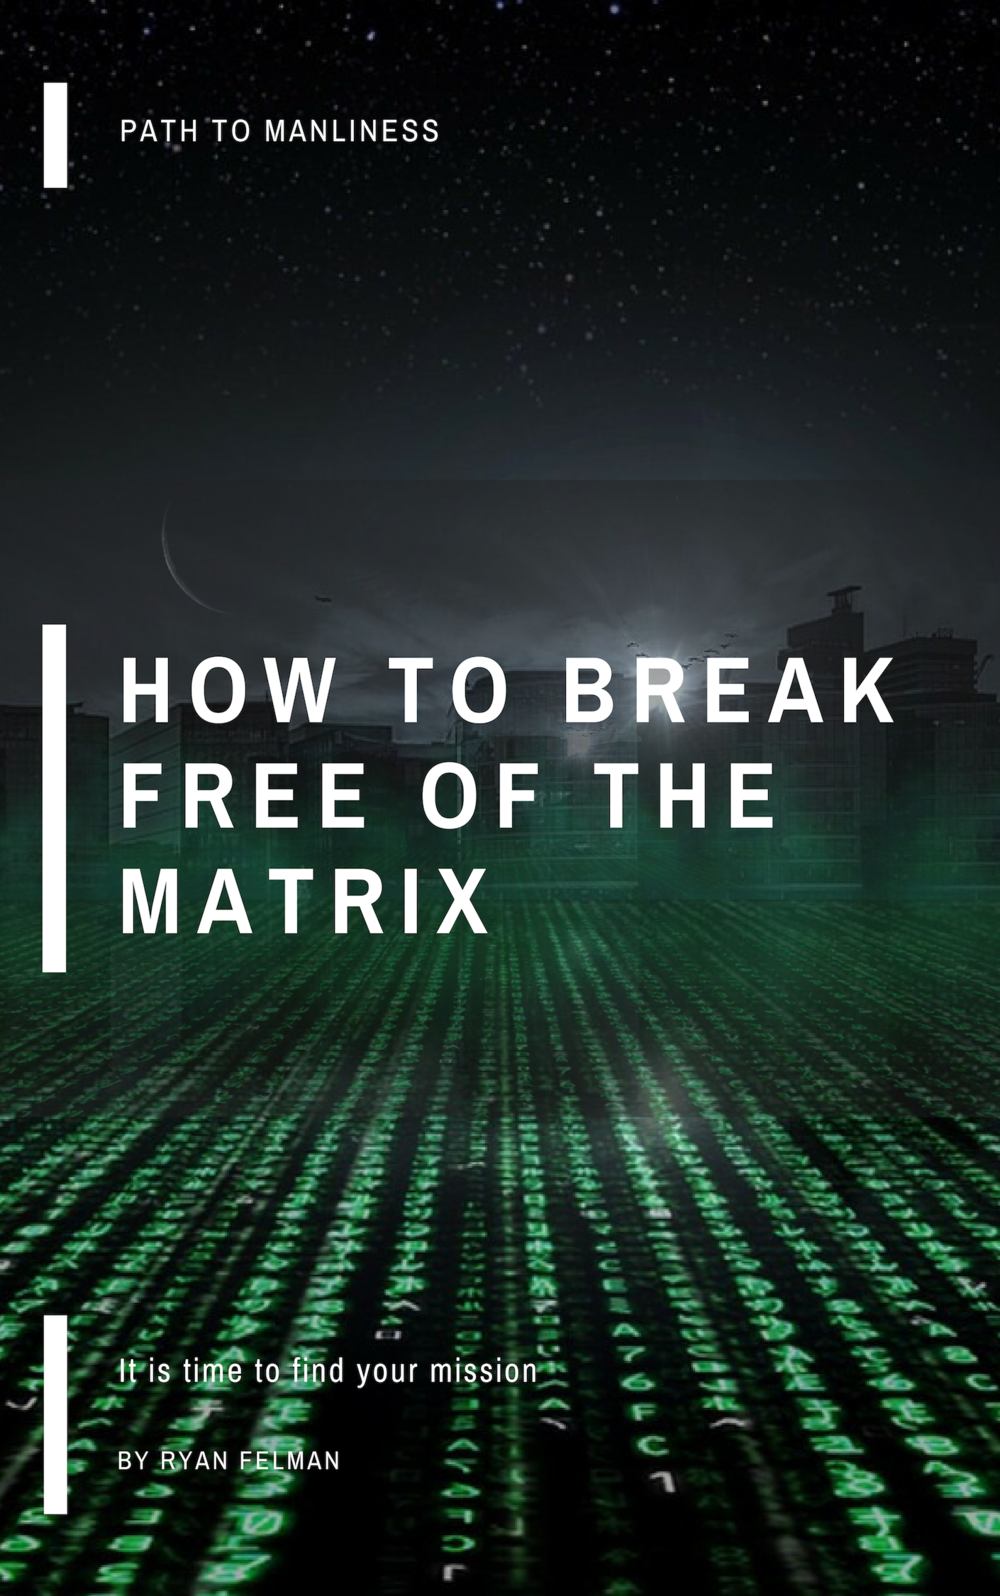 How to break free of the matrix cover.png